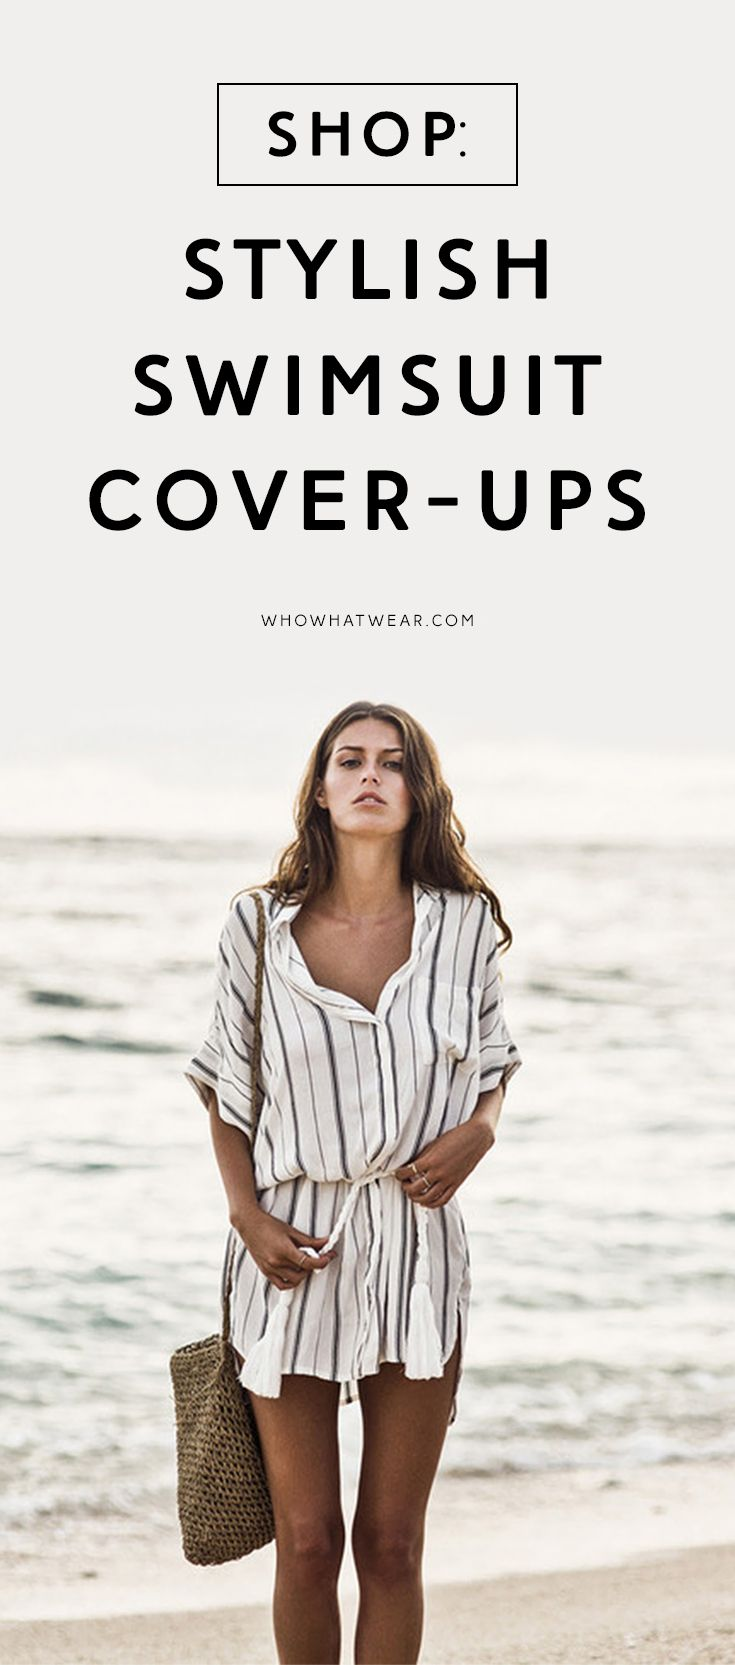 59aacae42dbc3 10 Swimsuit Cover-Ups You Won't Want to Take Off | Shopping List ...